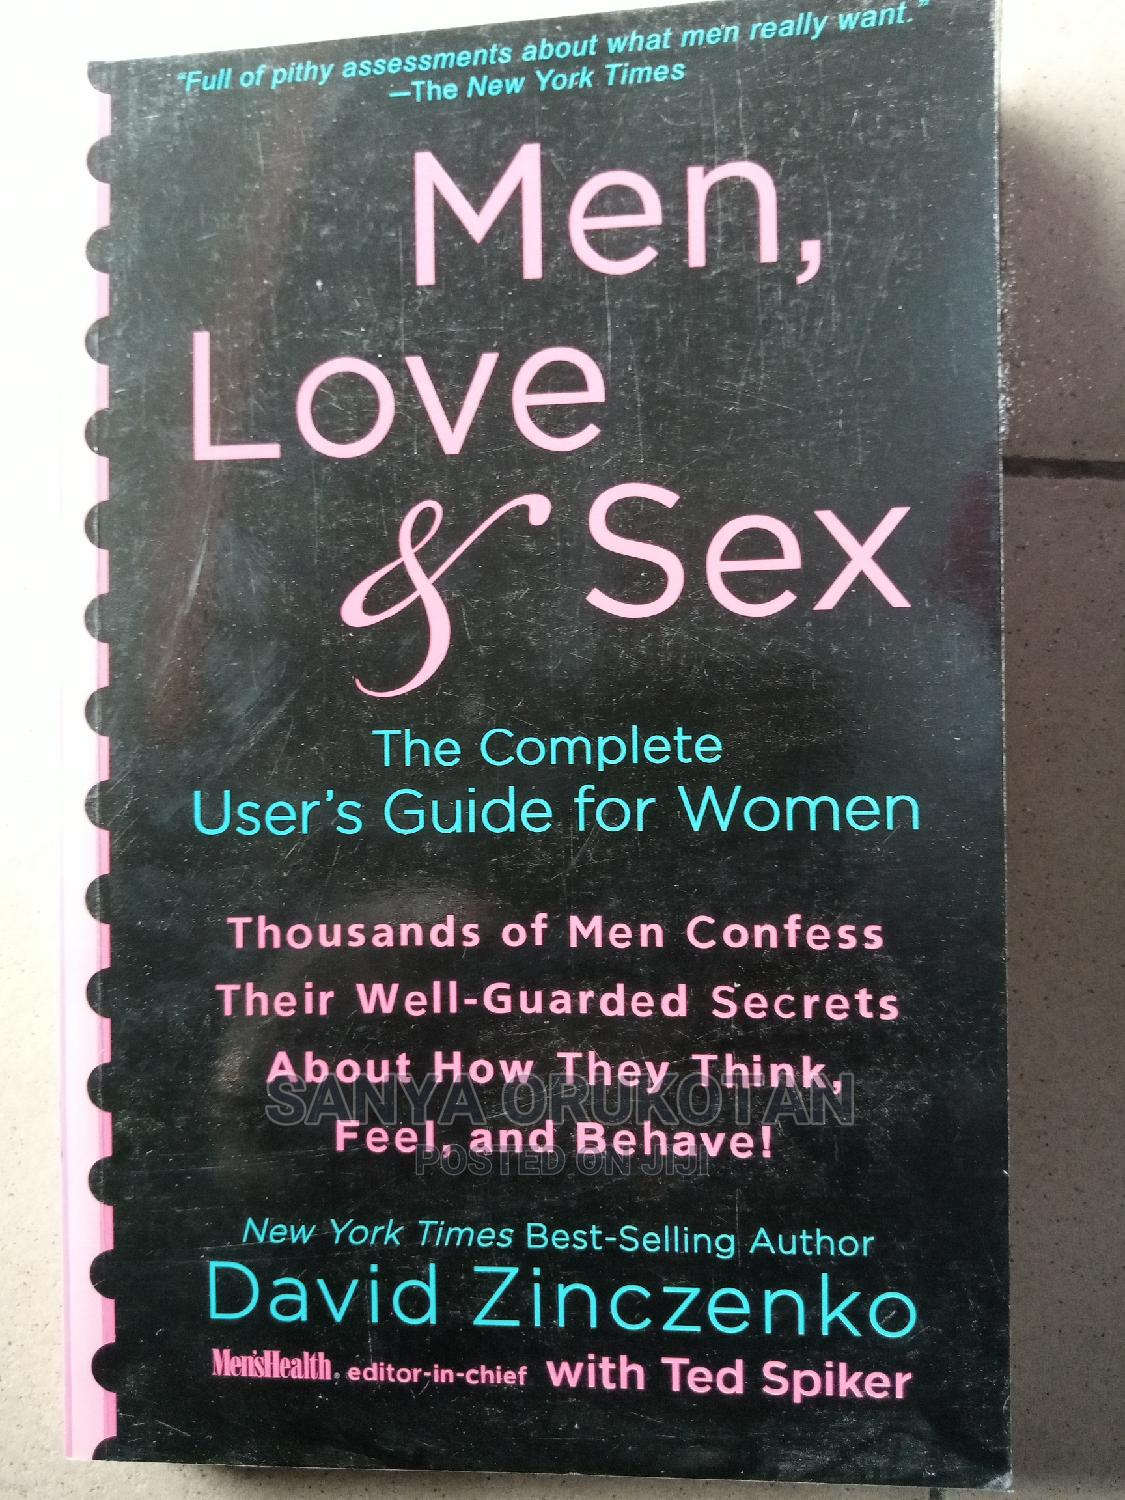 The complete guide to sex